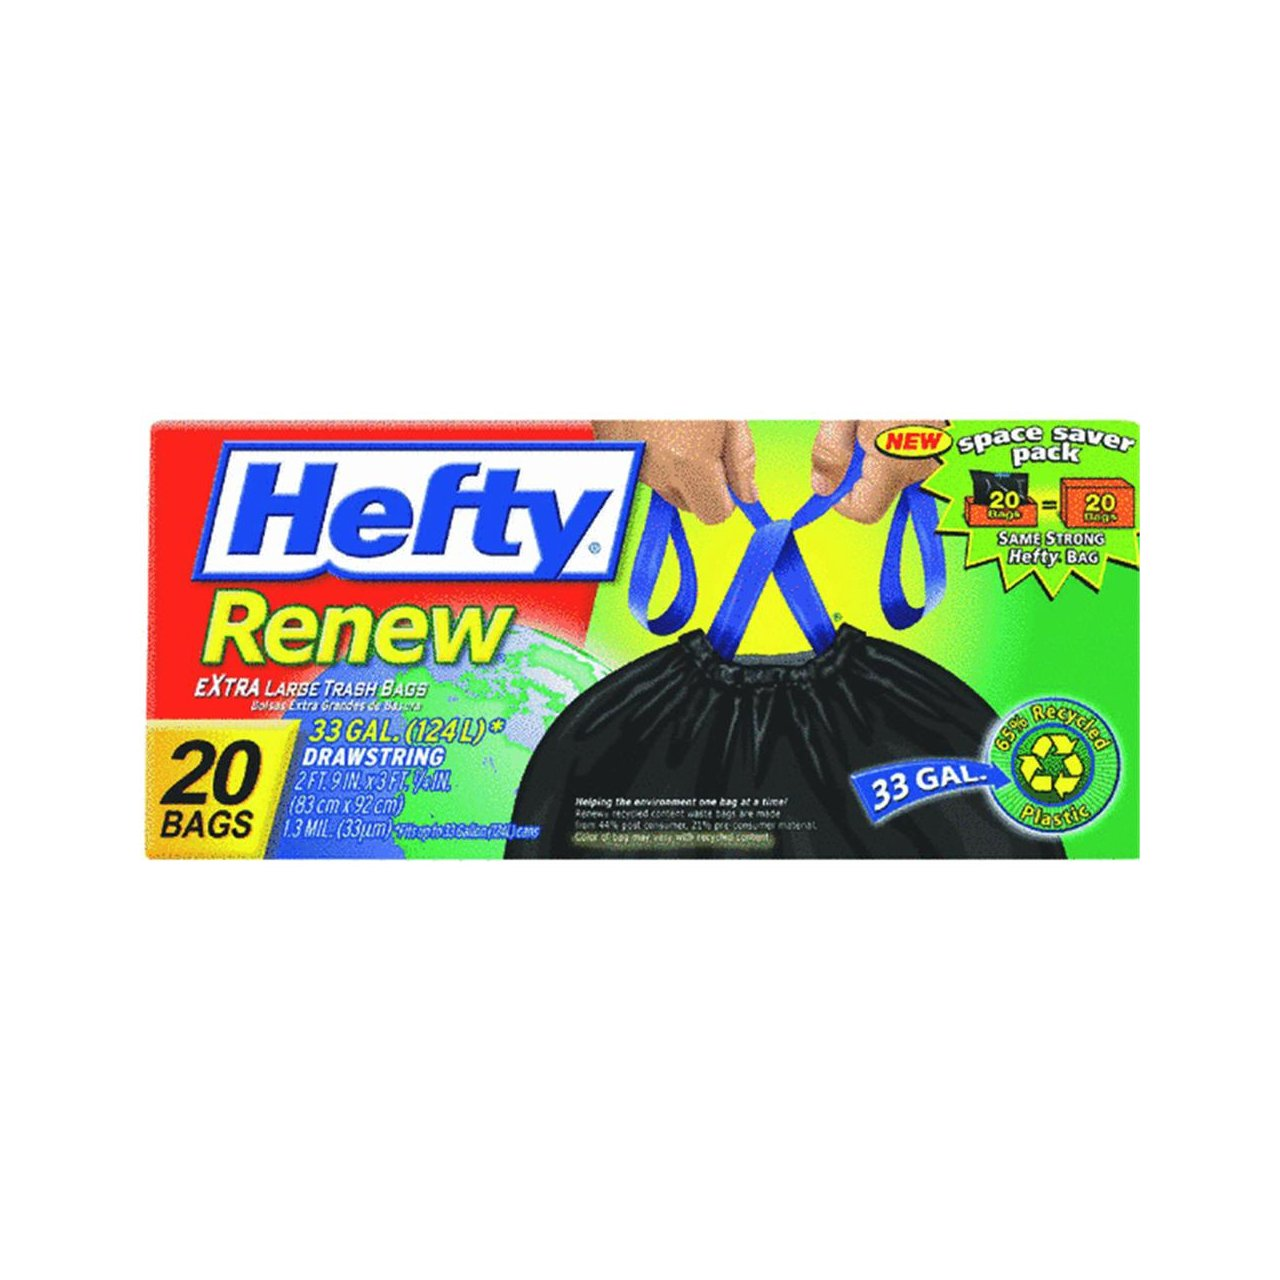 Hefty Renew Recycled Kitchen & Trash Bags